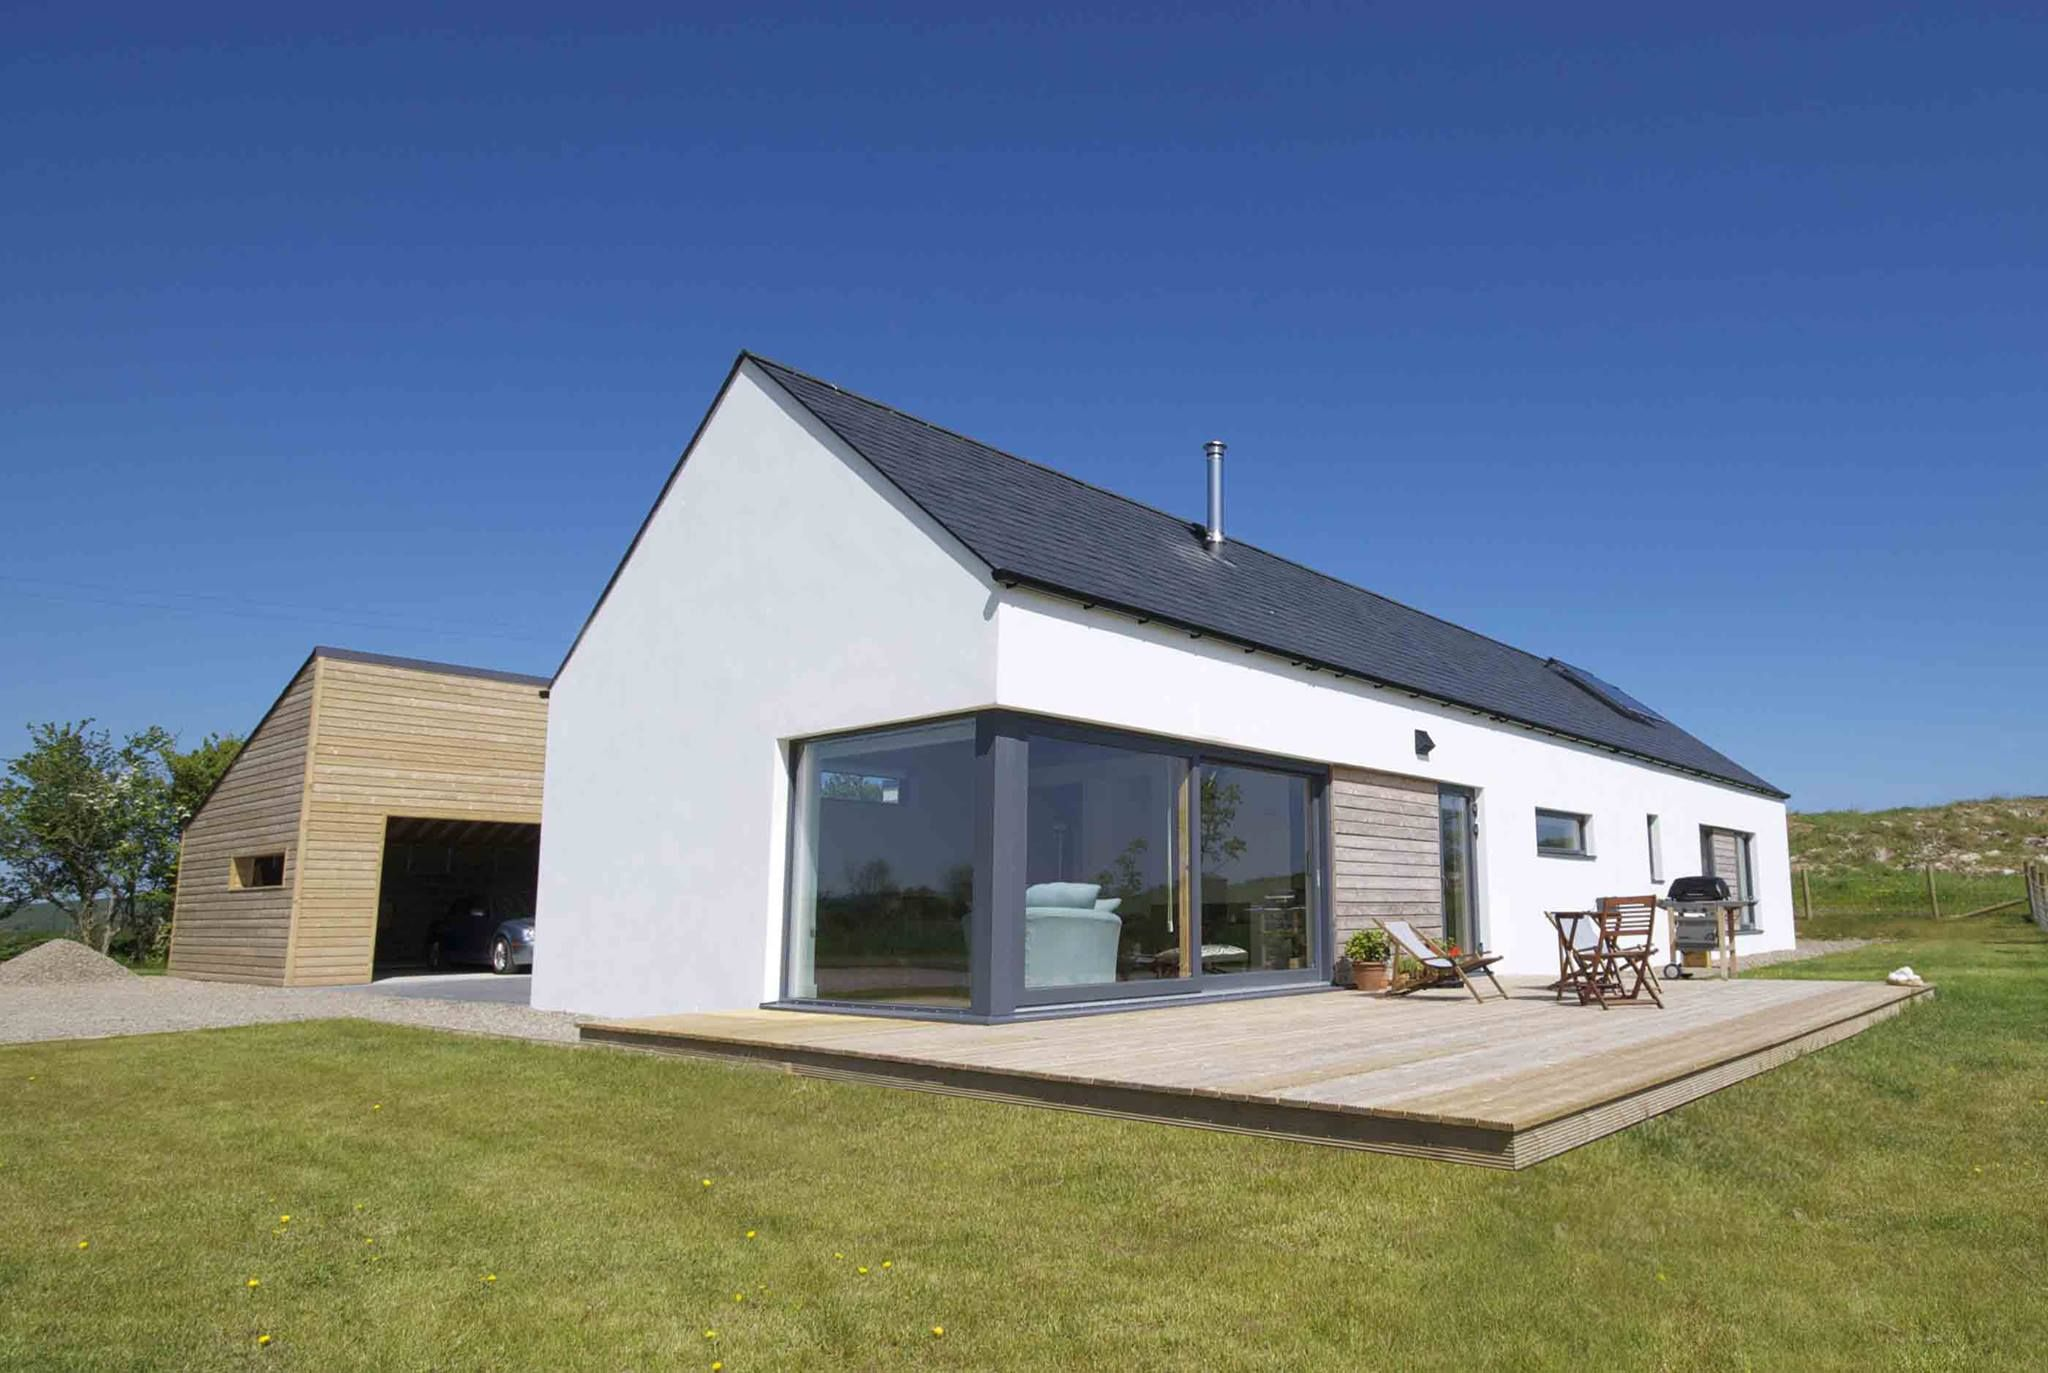 Brittas bay wicklow irish uk rural house designs for Barn architecture plans